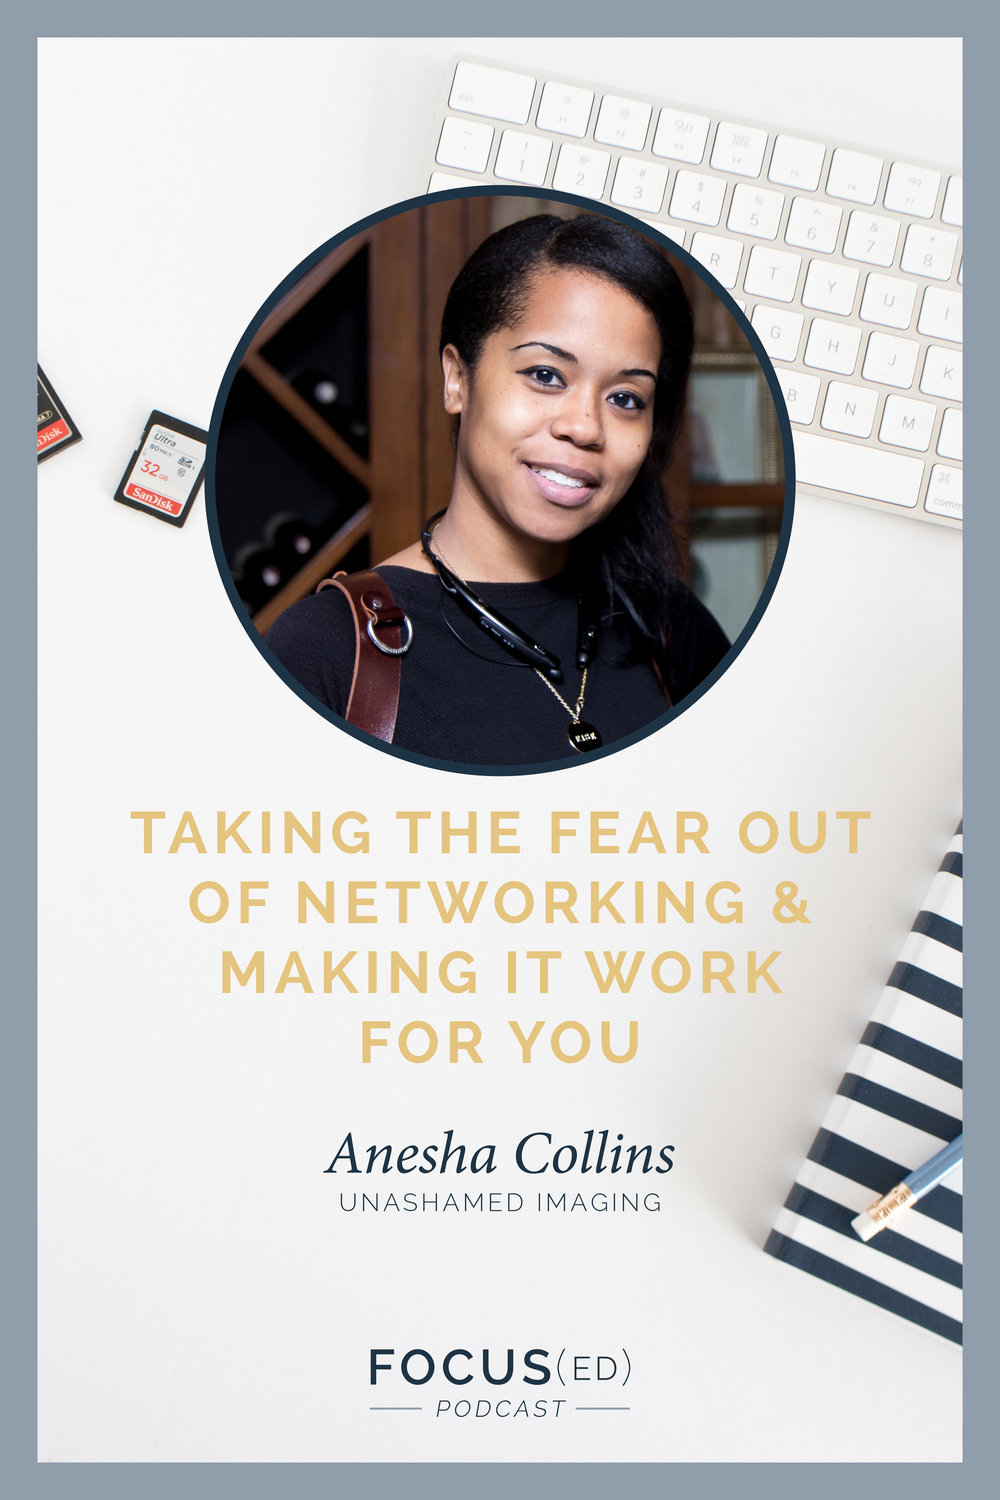 Taking the fear out of networking as a small business owner